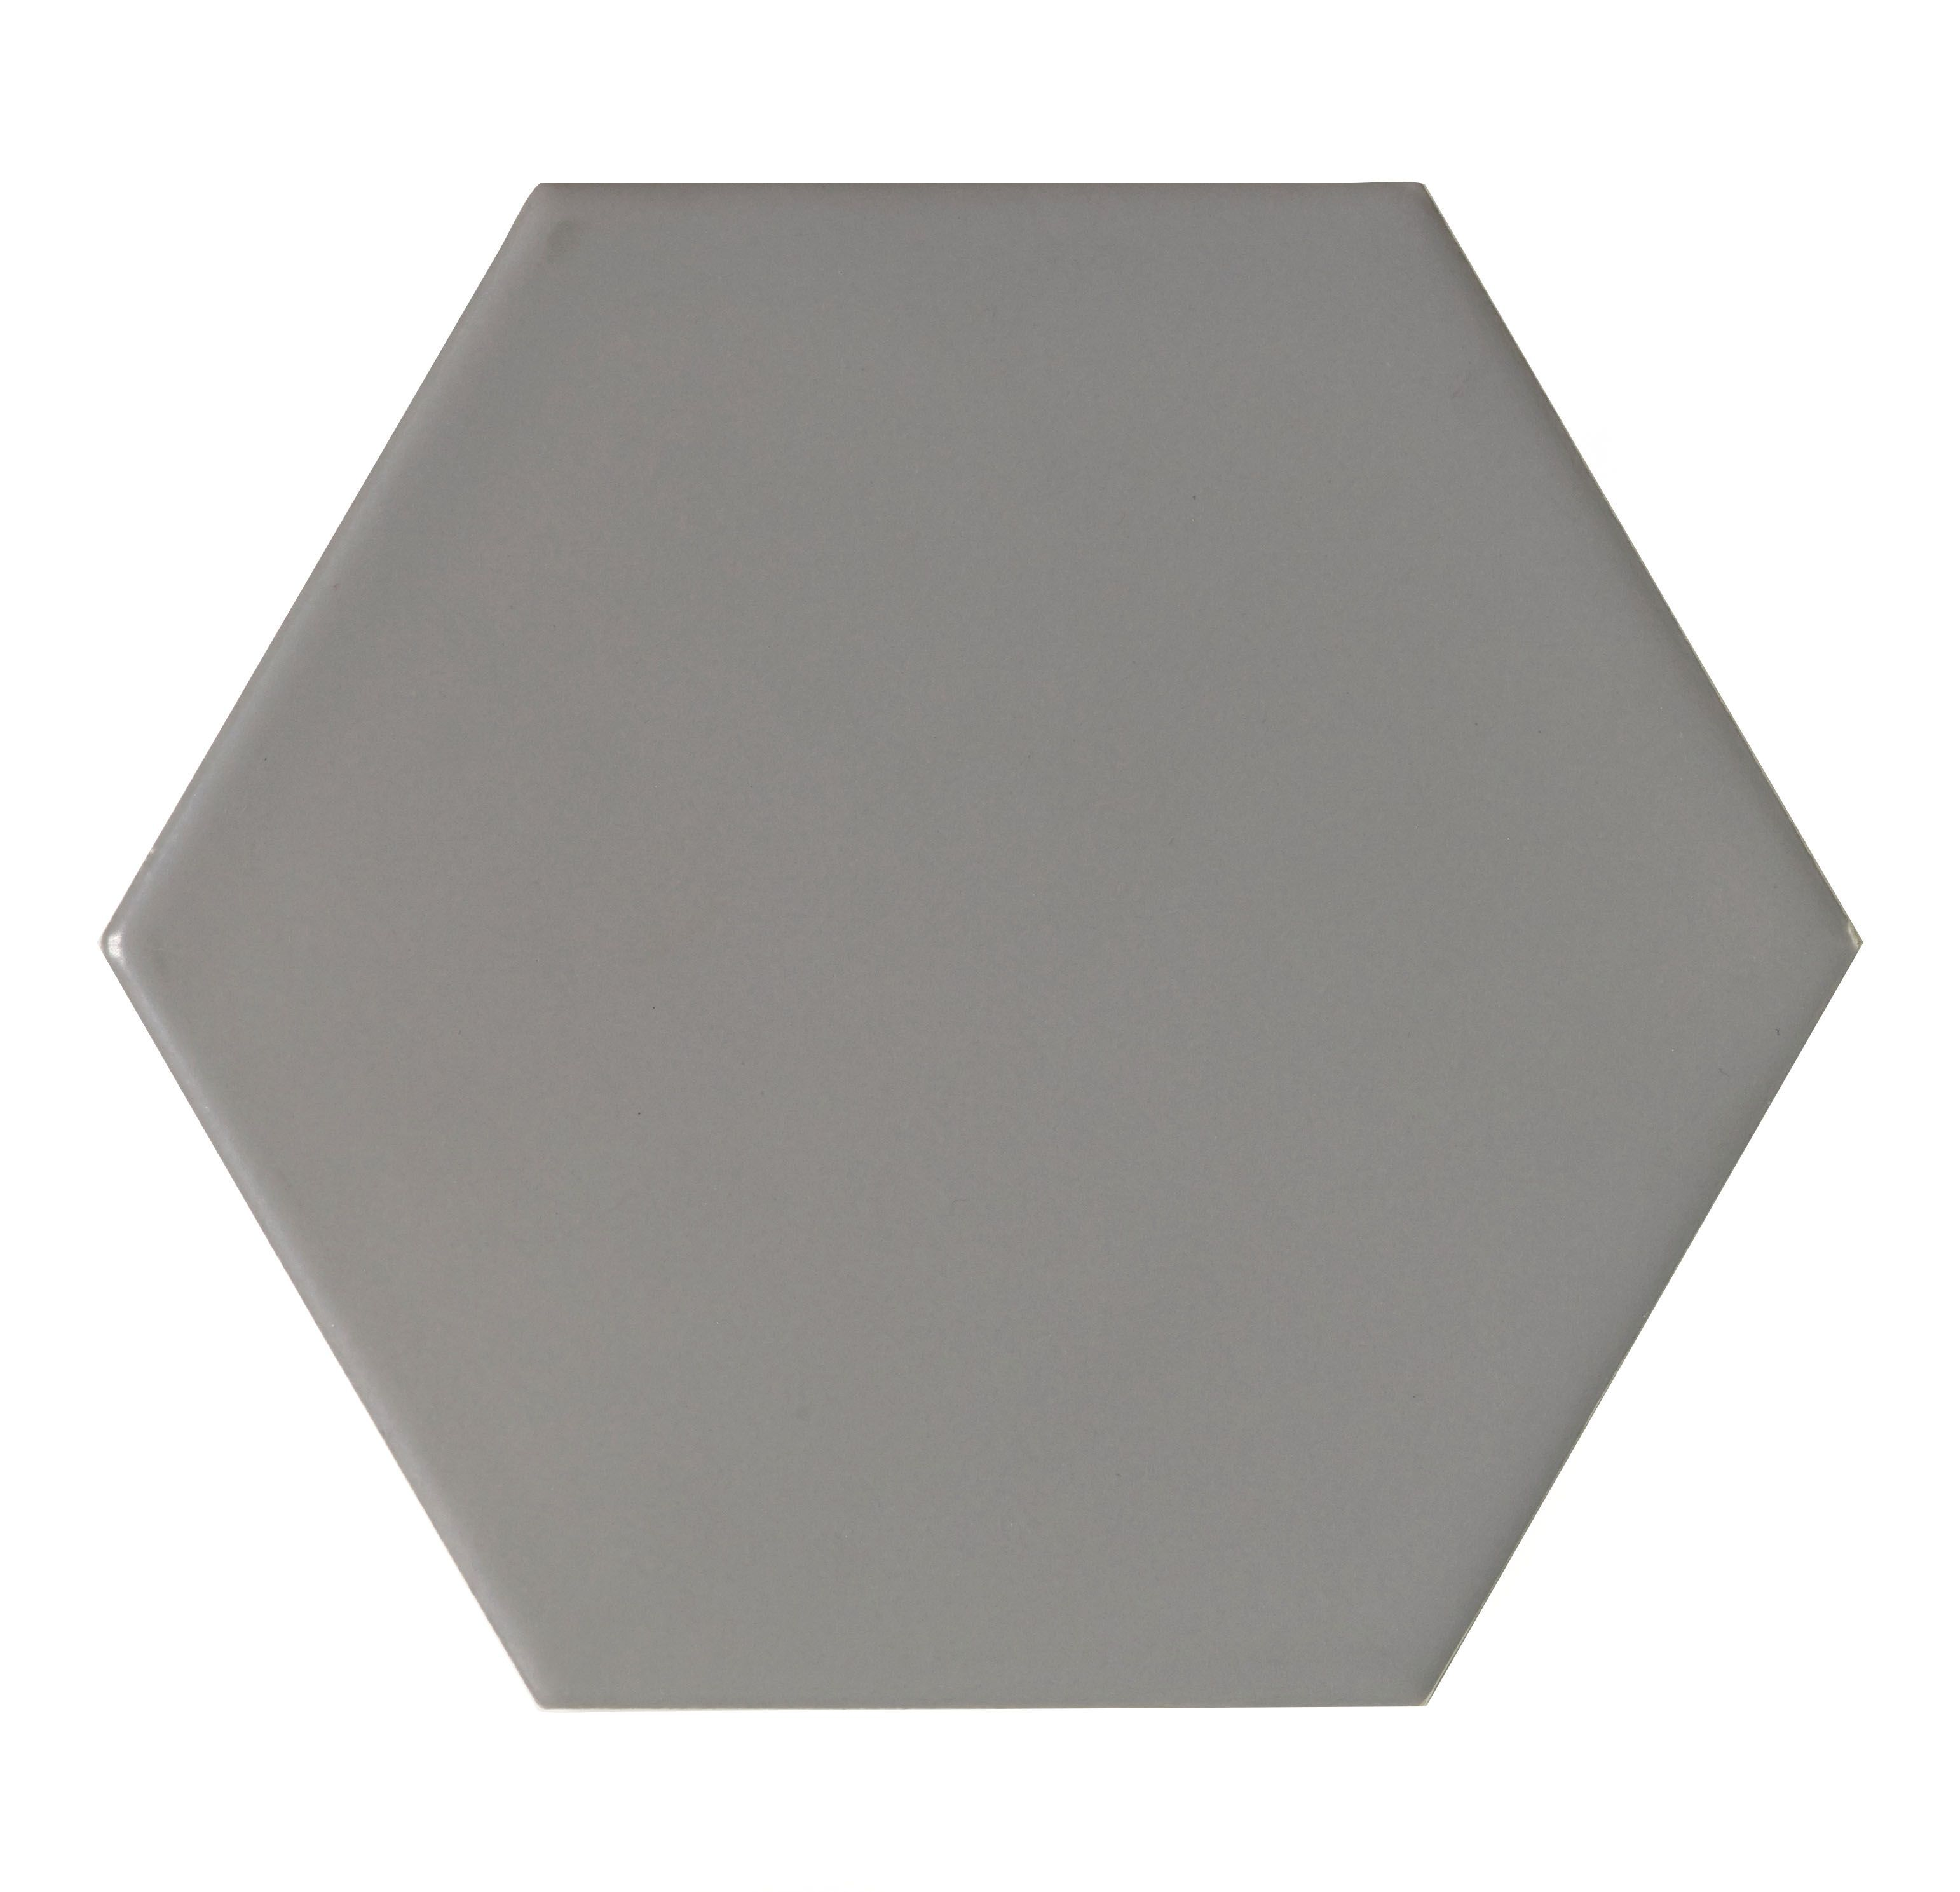 City Chic Stone Stone Effect Hexagon Ceramic Wall Tile, Pack Of 50, (l)150mm (w)173mm